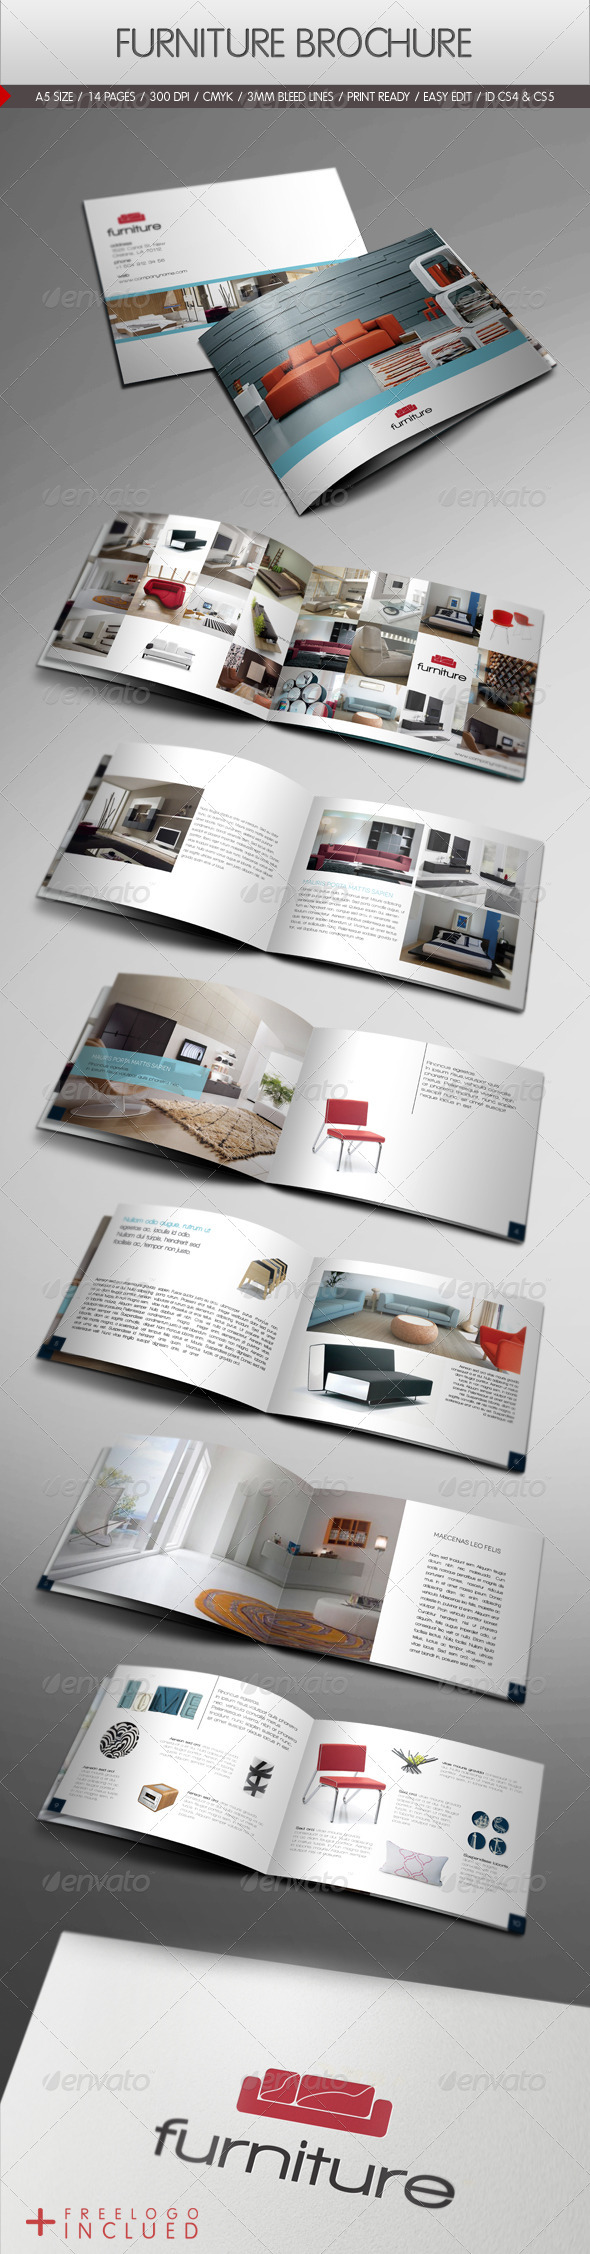 Furniture Brochure - Corporate Brochures